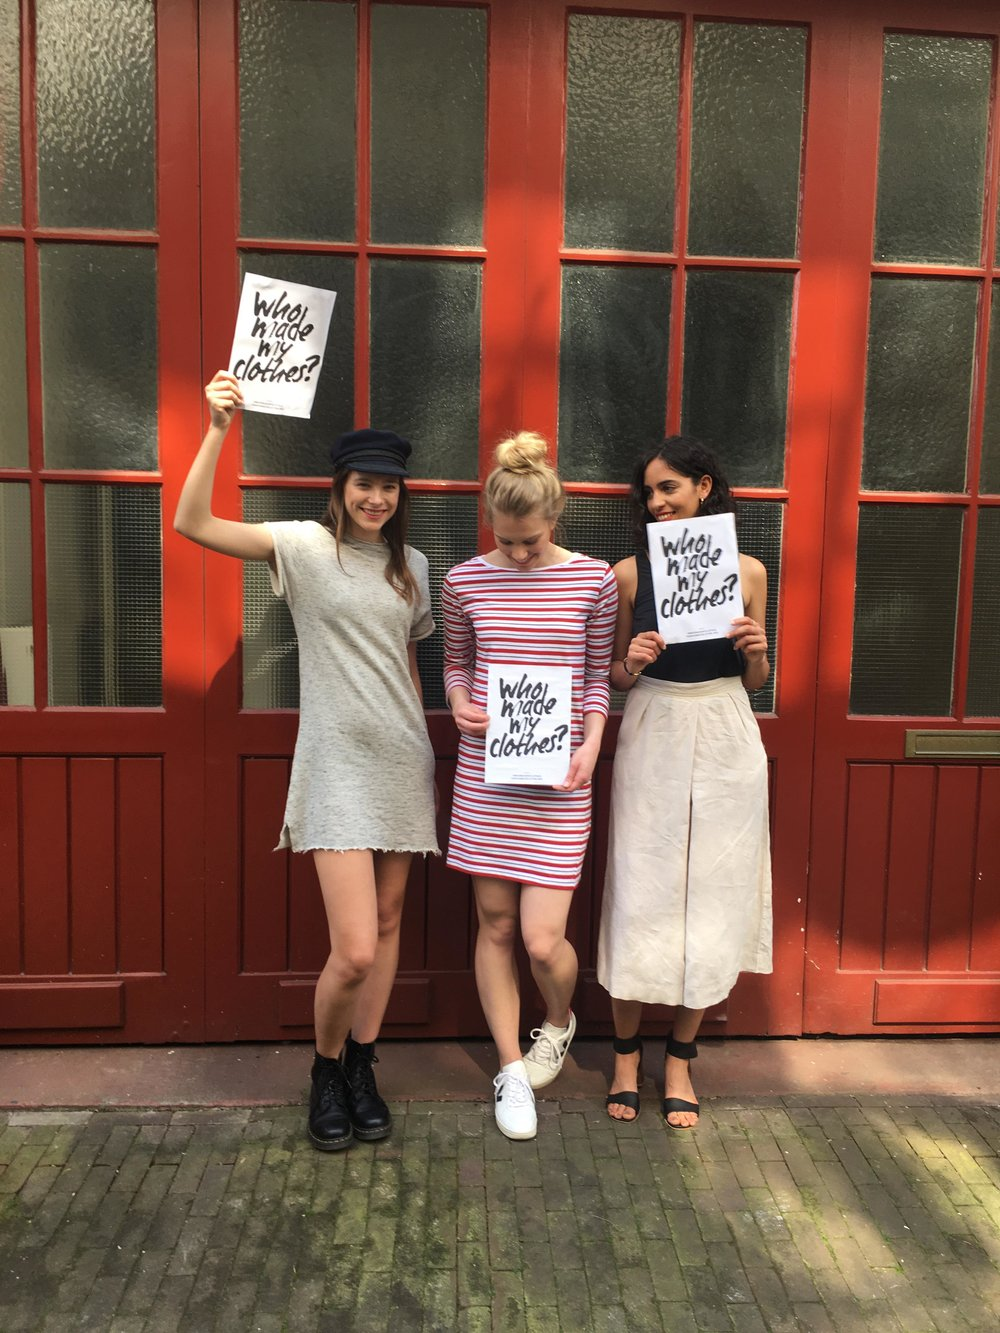 TGL models showing their support of the Fashion Revolution #whomademyclothes campaign